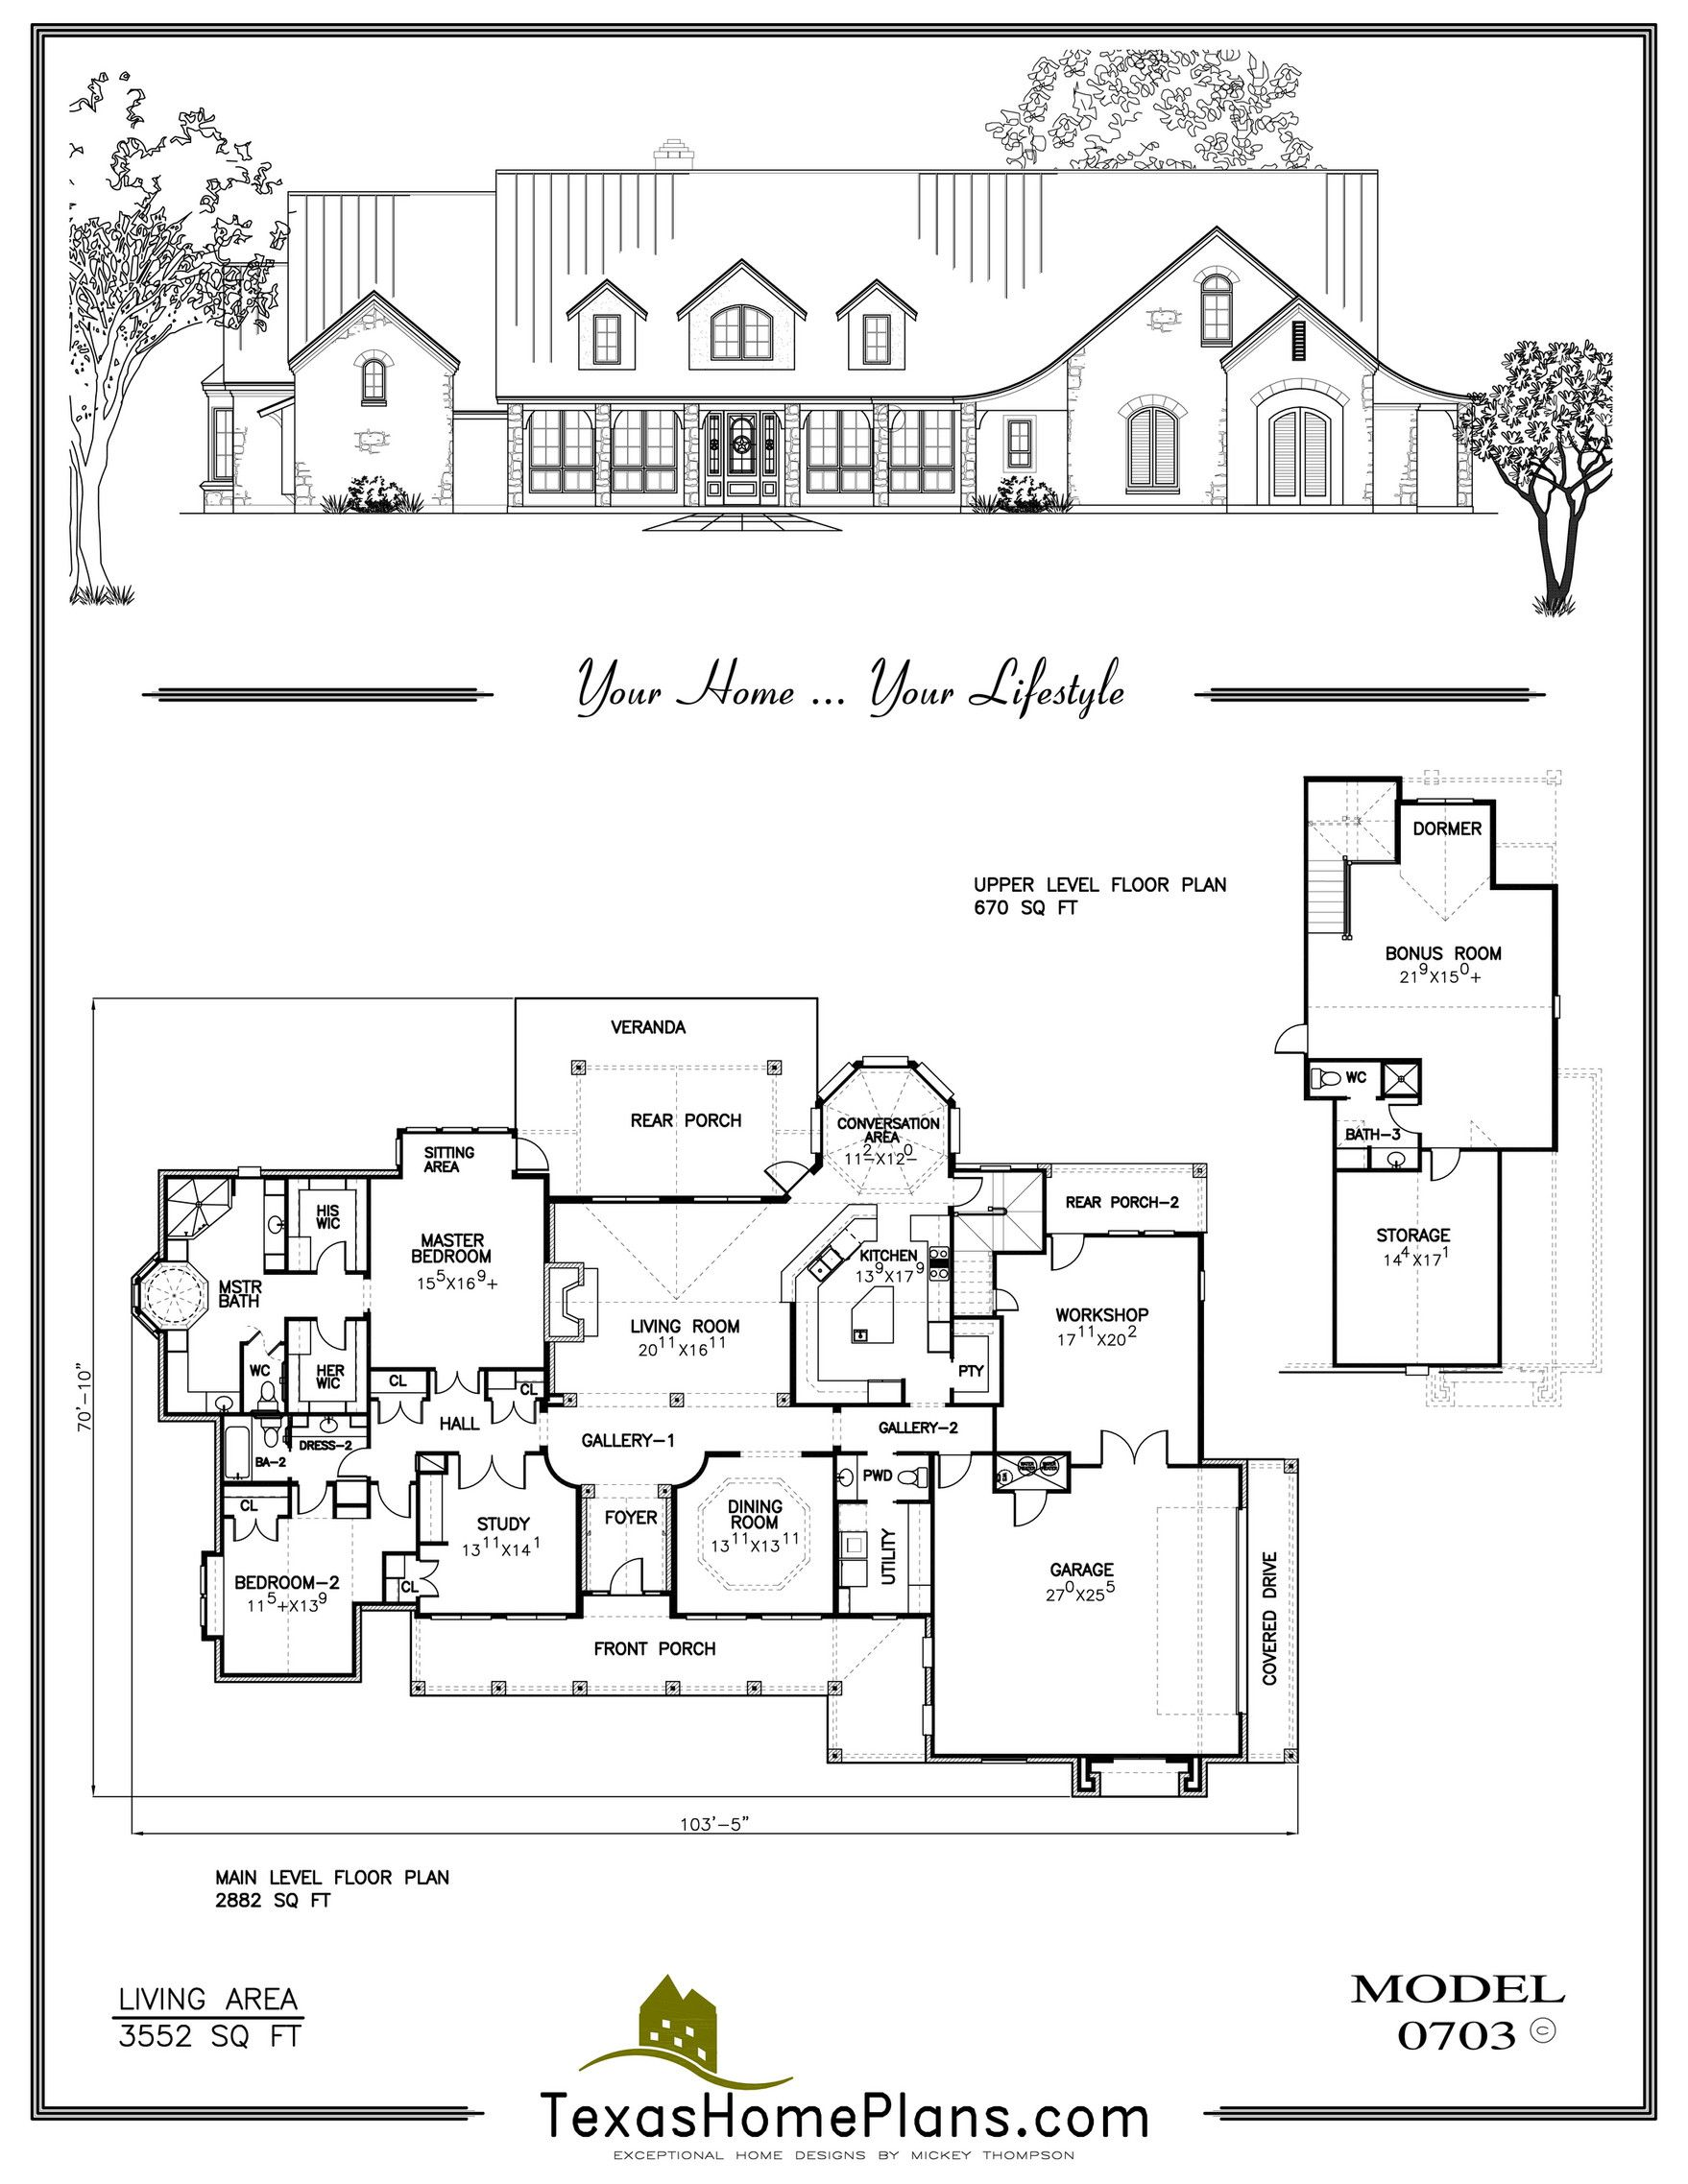 Texas Home Plans Texas German Page 22 23 Texas Hill Country House Plans House Plans Country Floor Plans